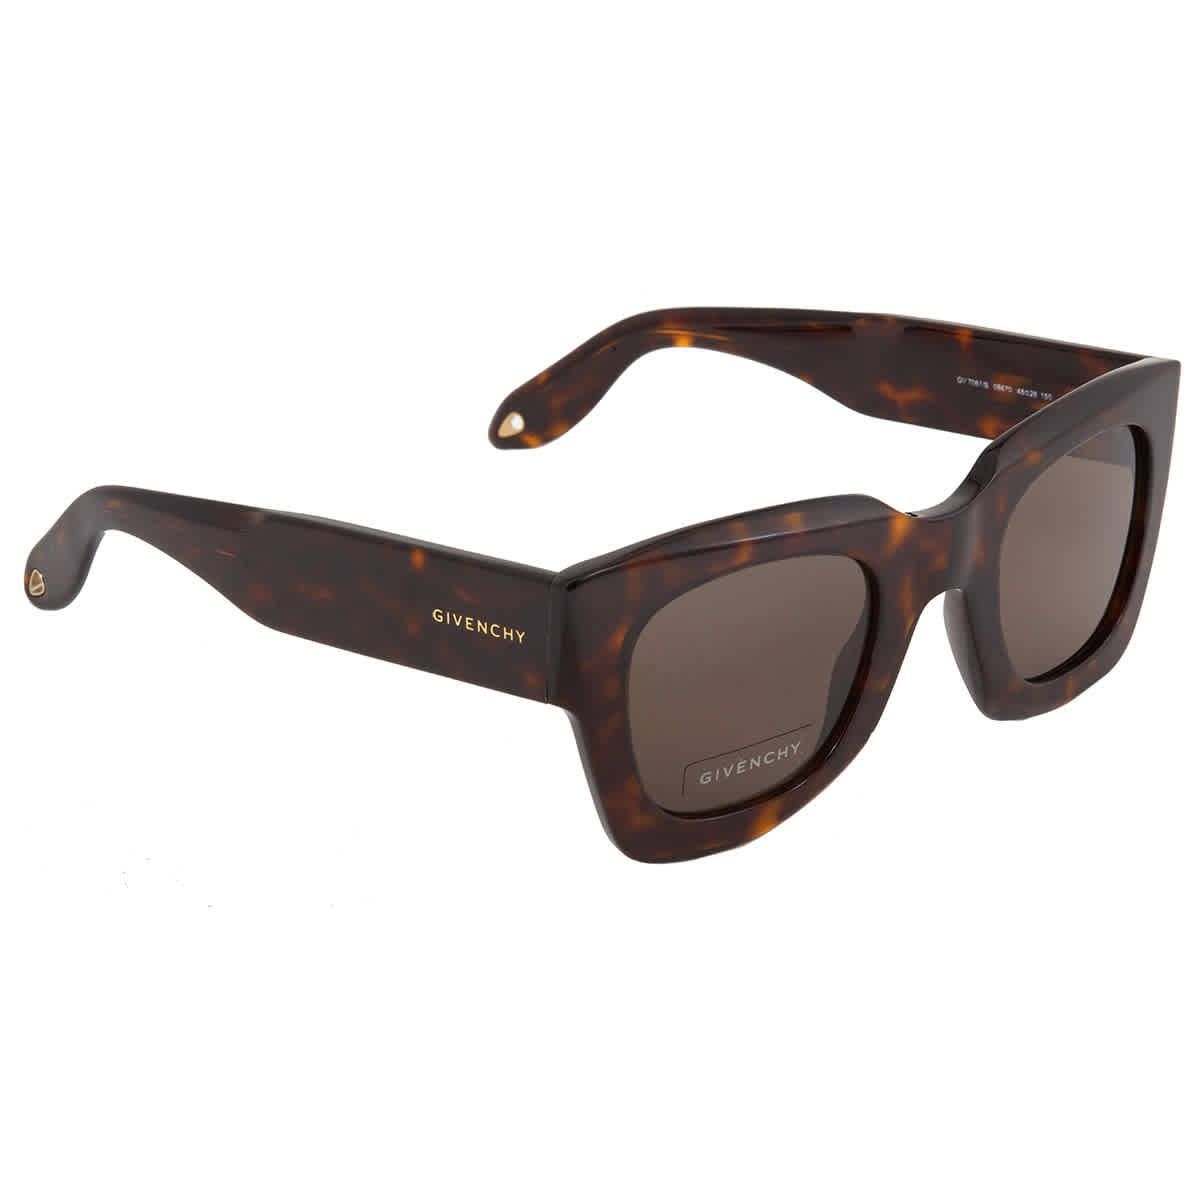 Givenchy Brown Square Mens Sunglasses GV7061s-8670-48